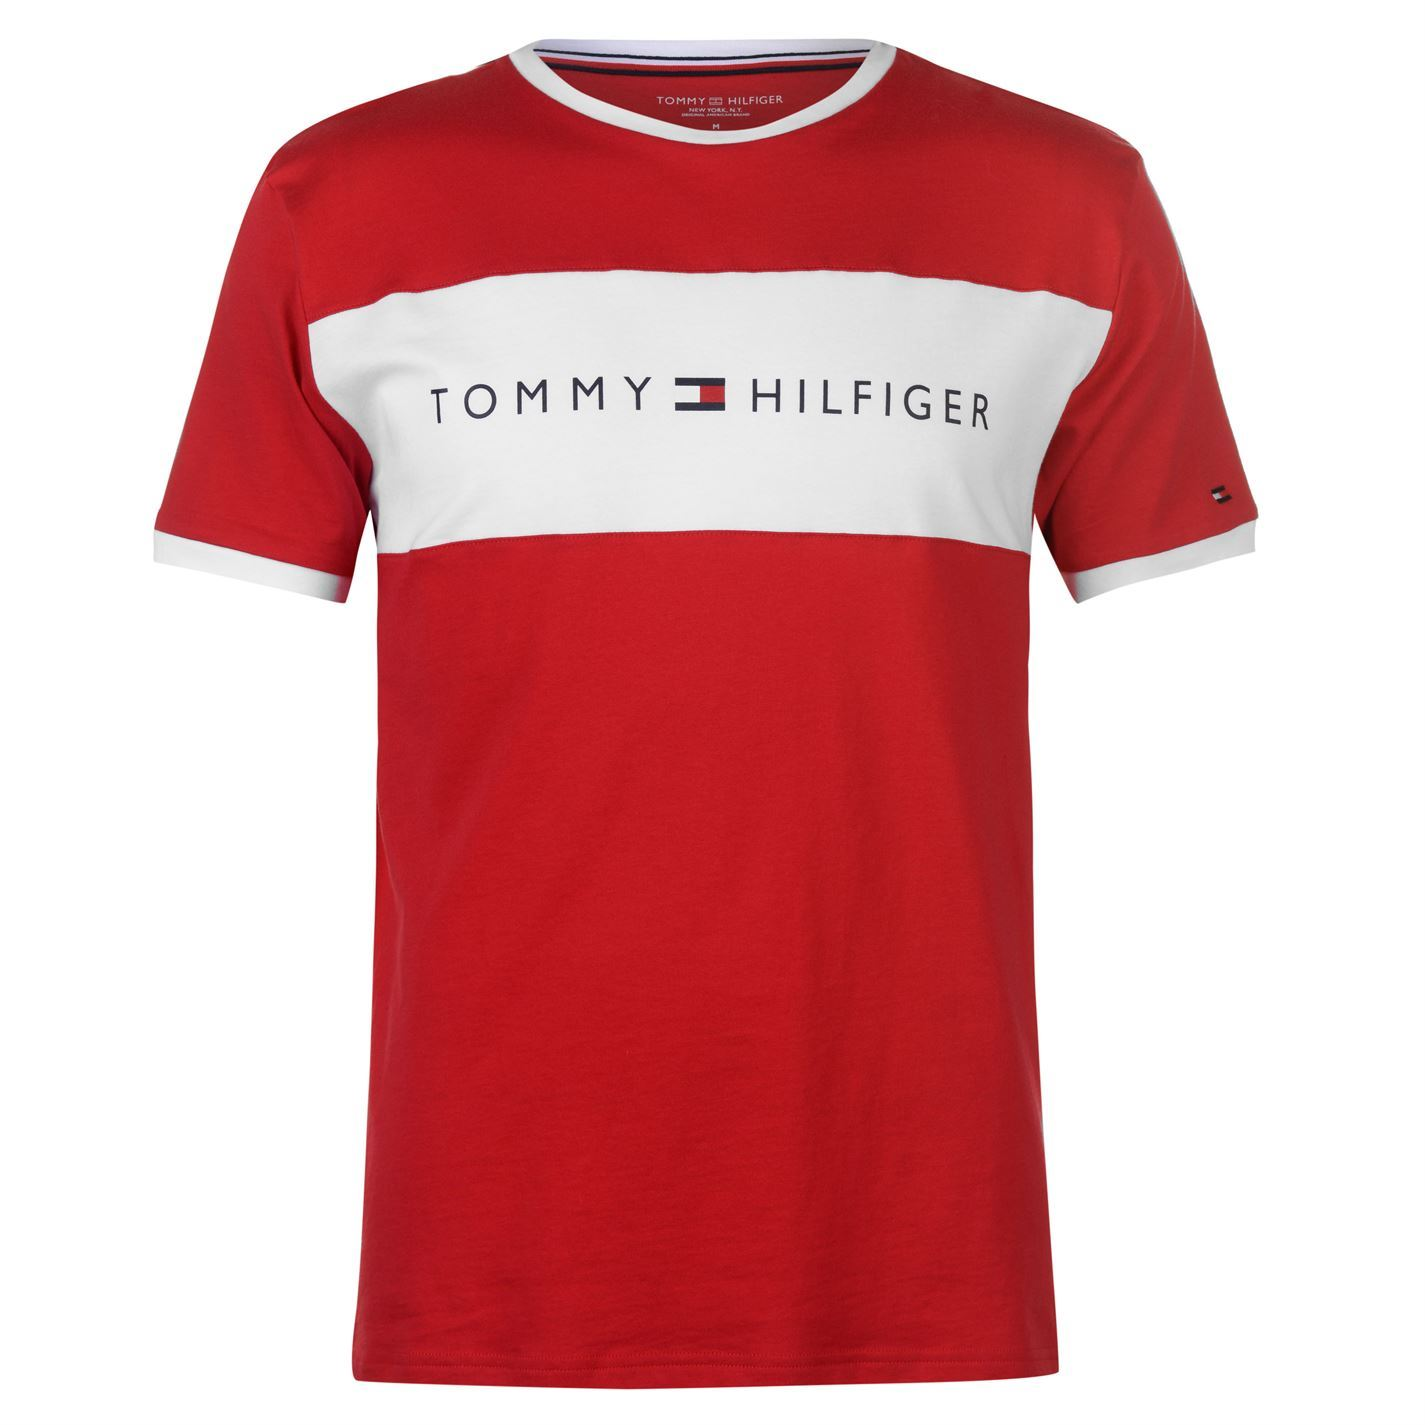 2f20adc59 Details about Mens Tommy Hilfiger Chest Logo Short Sleeve T Shirt Crew Neck  New